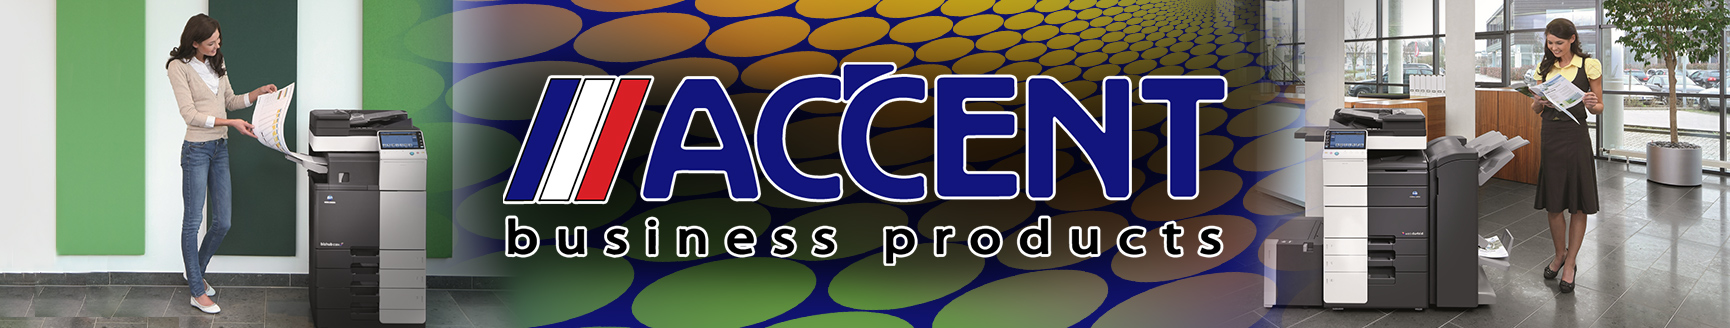 Accent Business Products Email Contact Forms